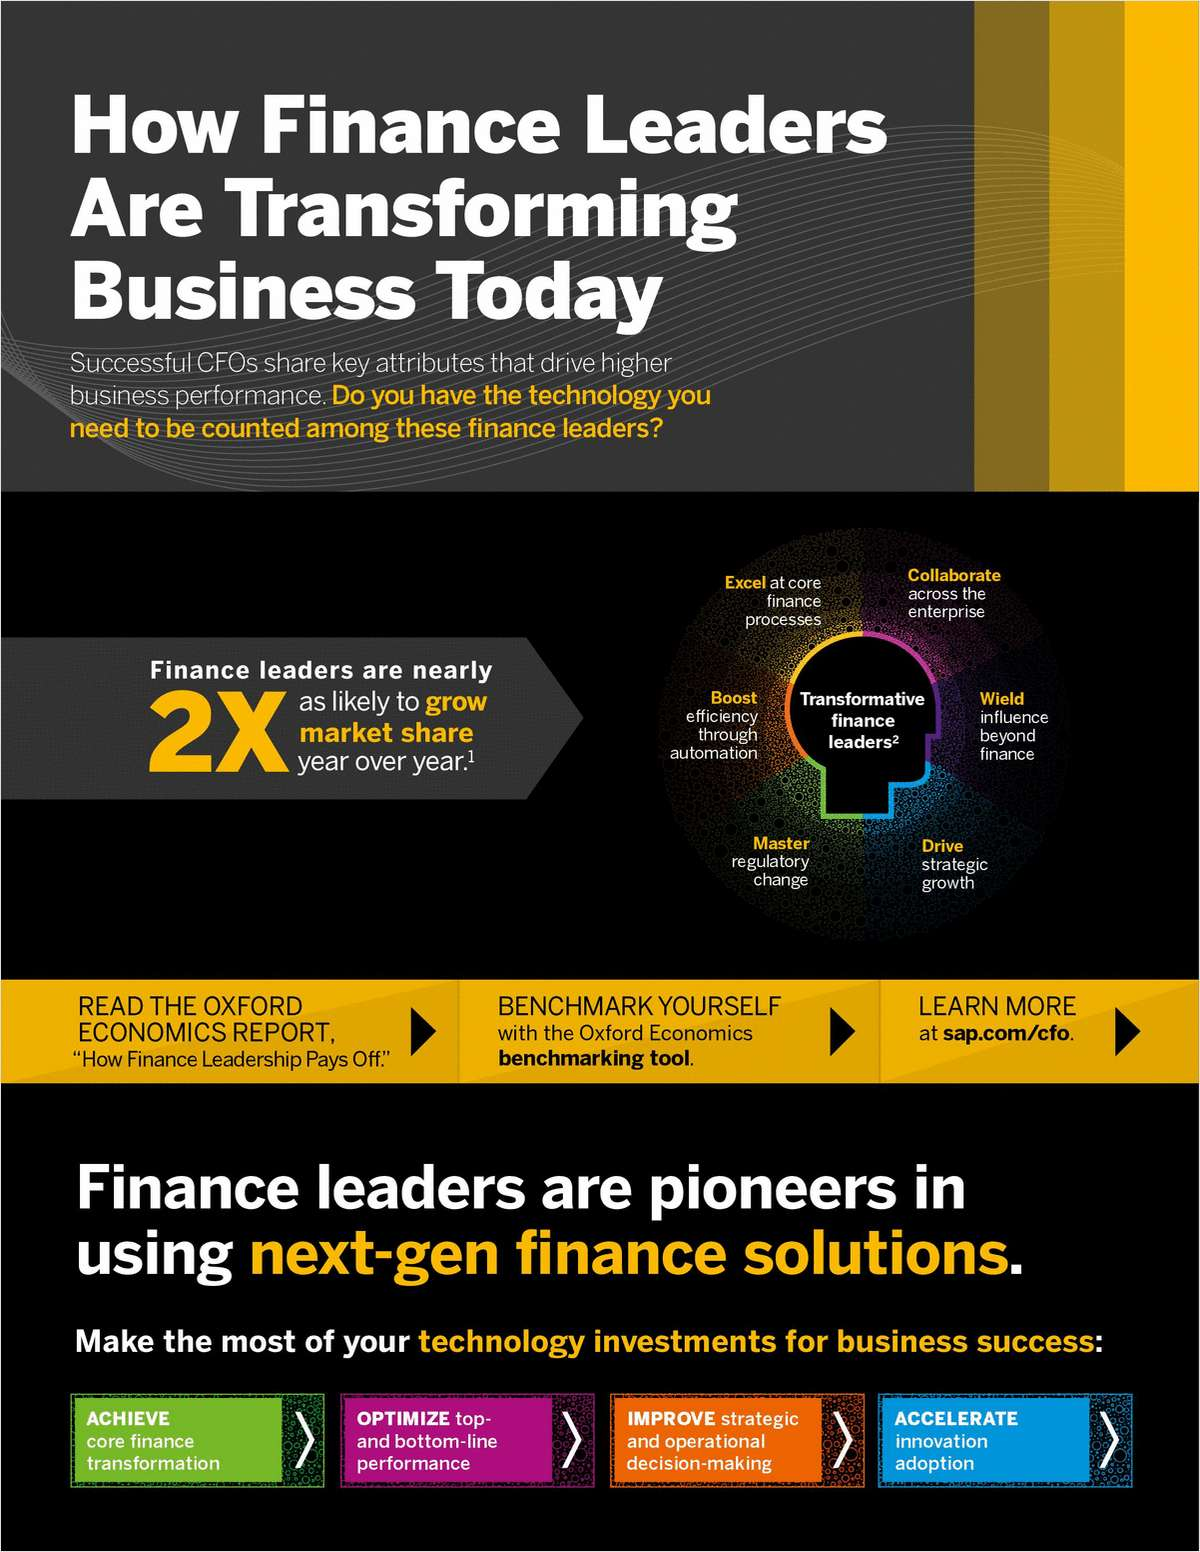 How Finance Leaders Are Transforming Business Today